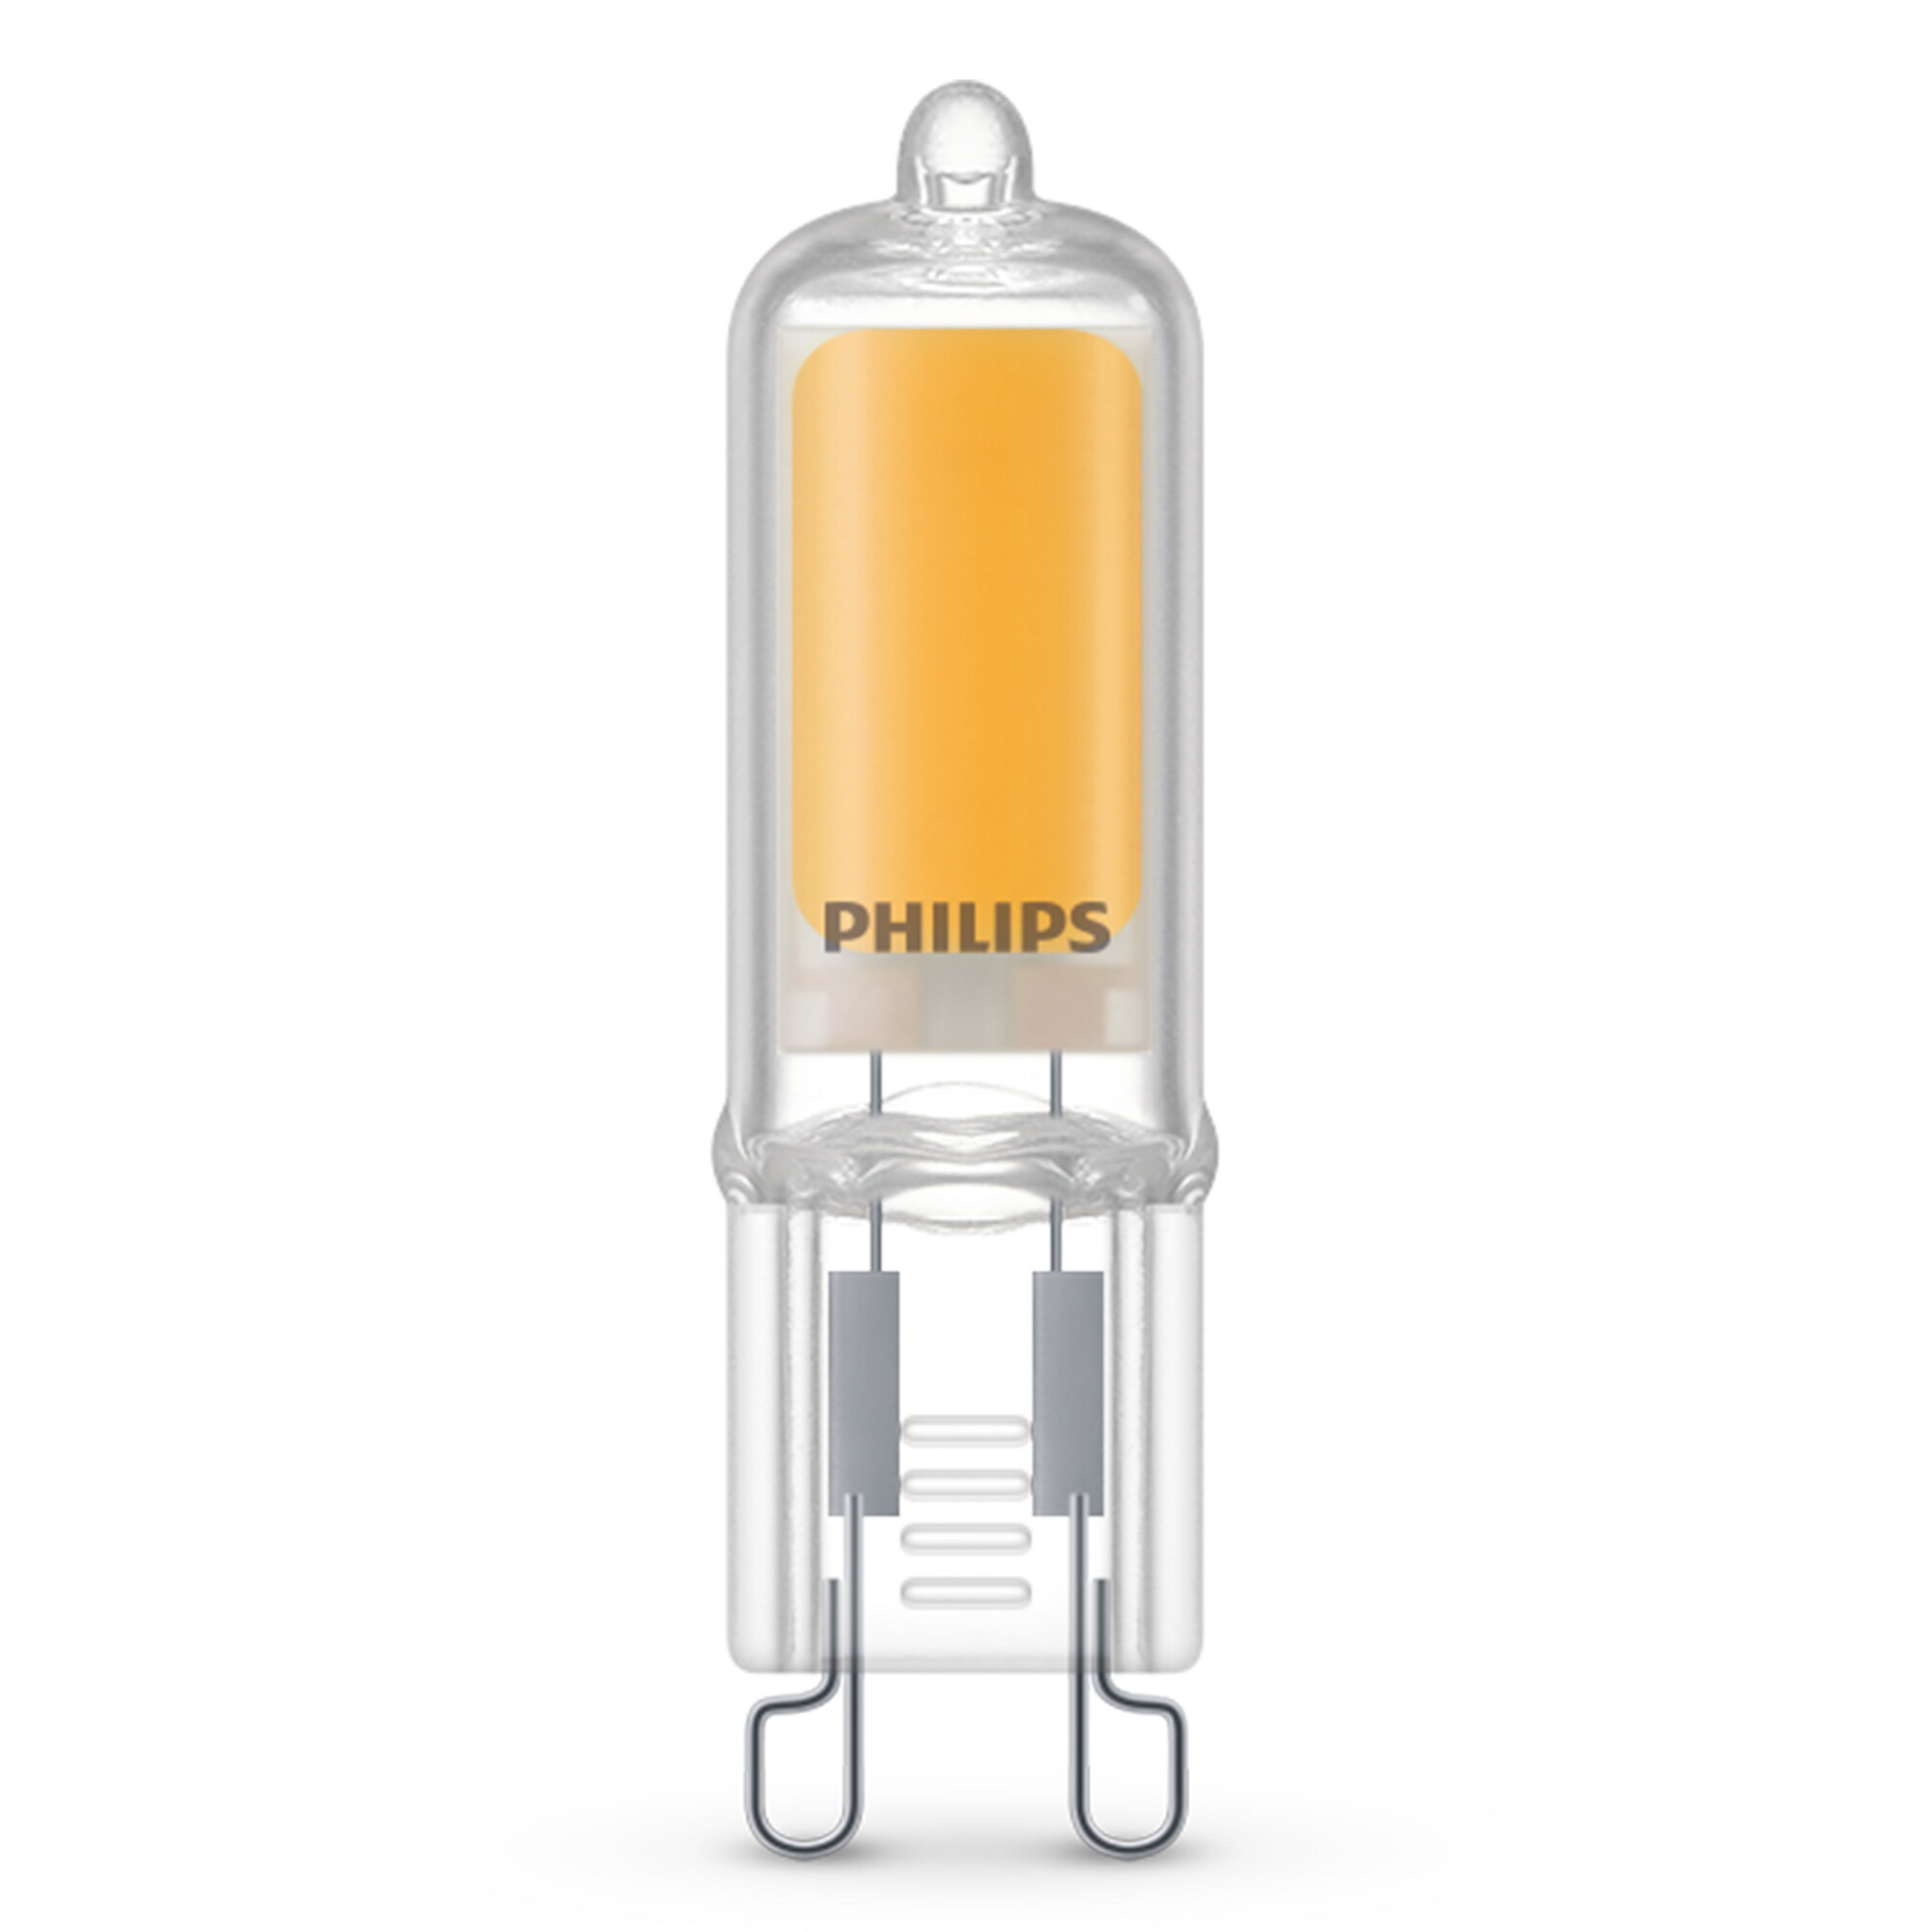 Philips LED classic G9 2W 200lm 2700K Capsule Transparant